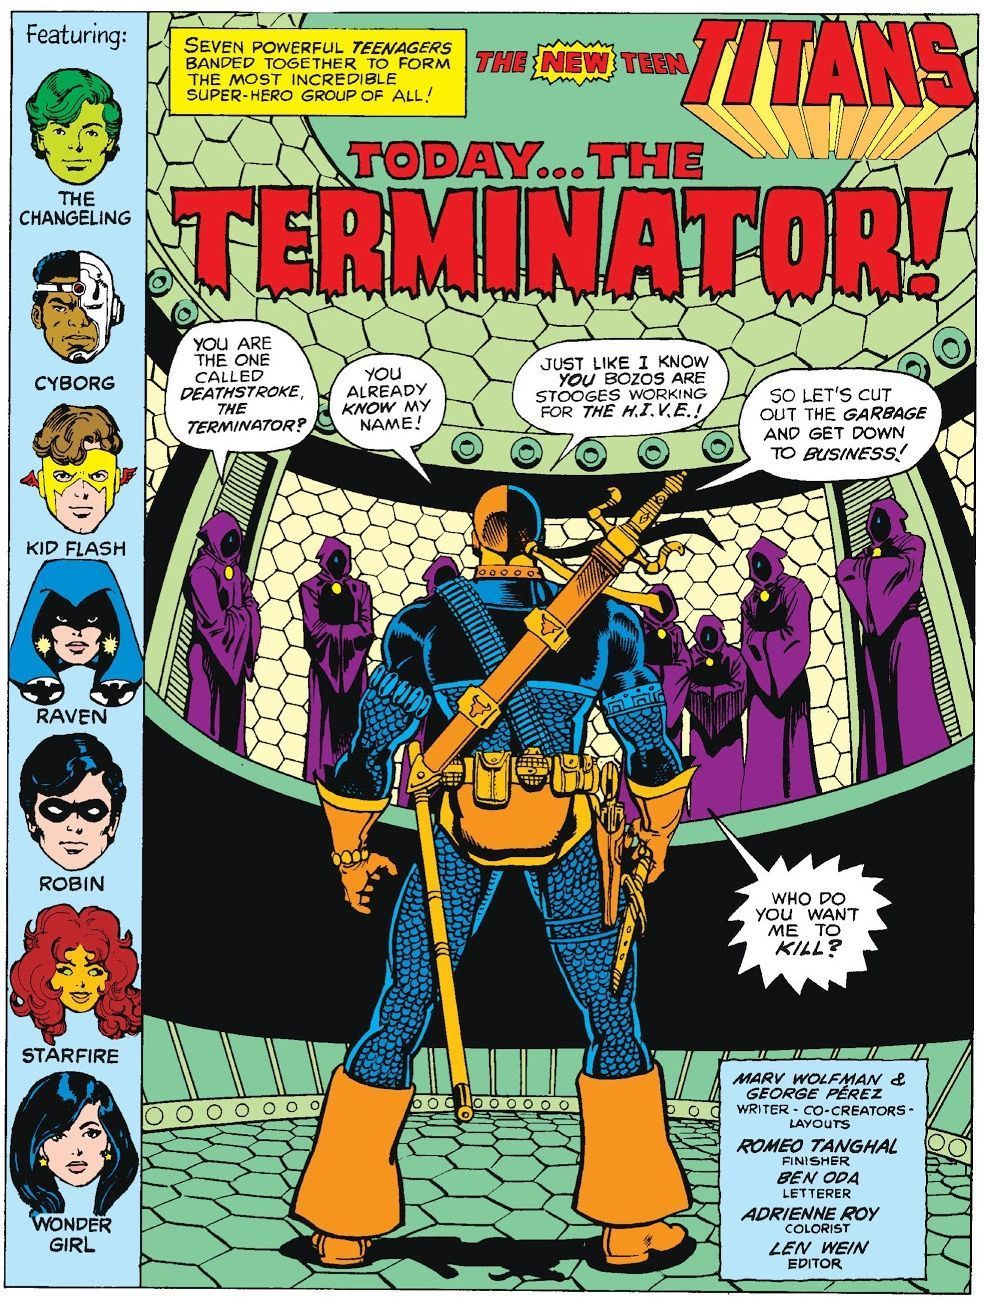 The New Teen Titans #2 (Written by Marv Wolfman, Art by George Perez)